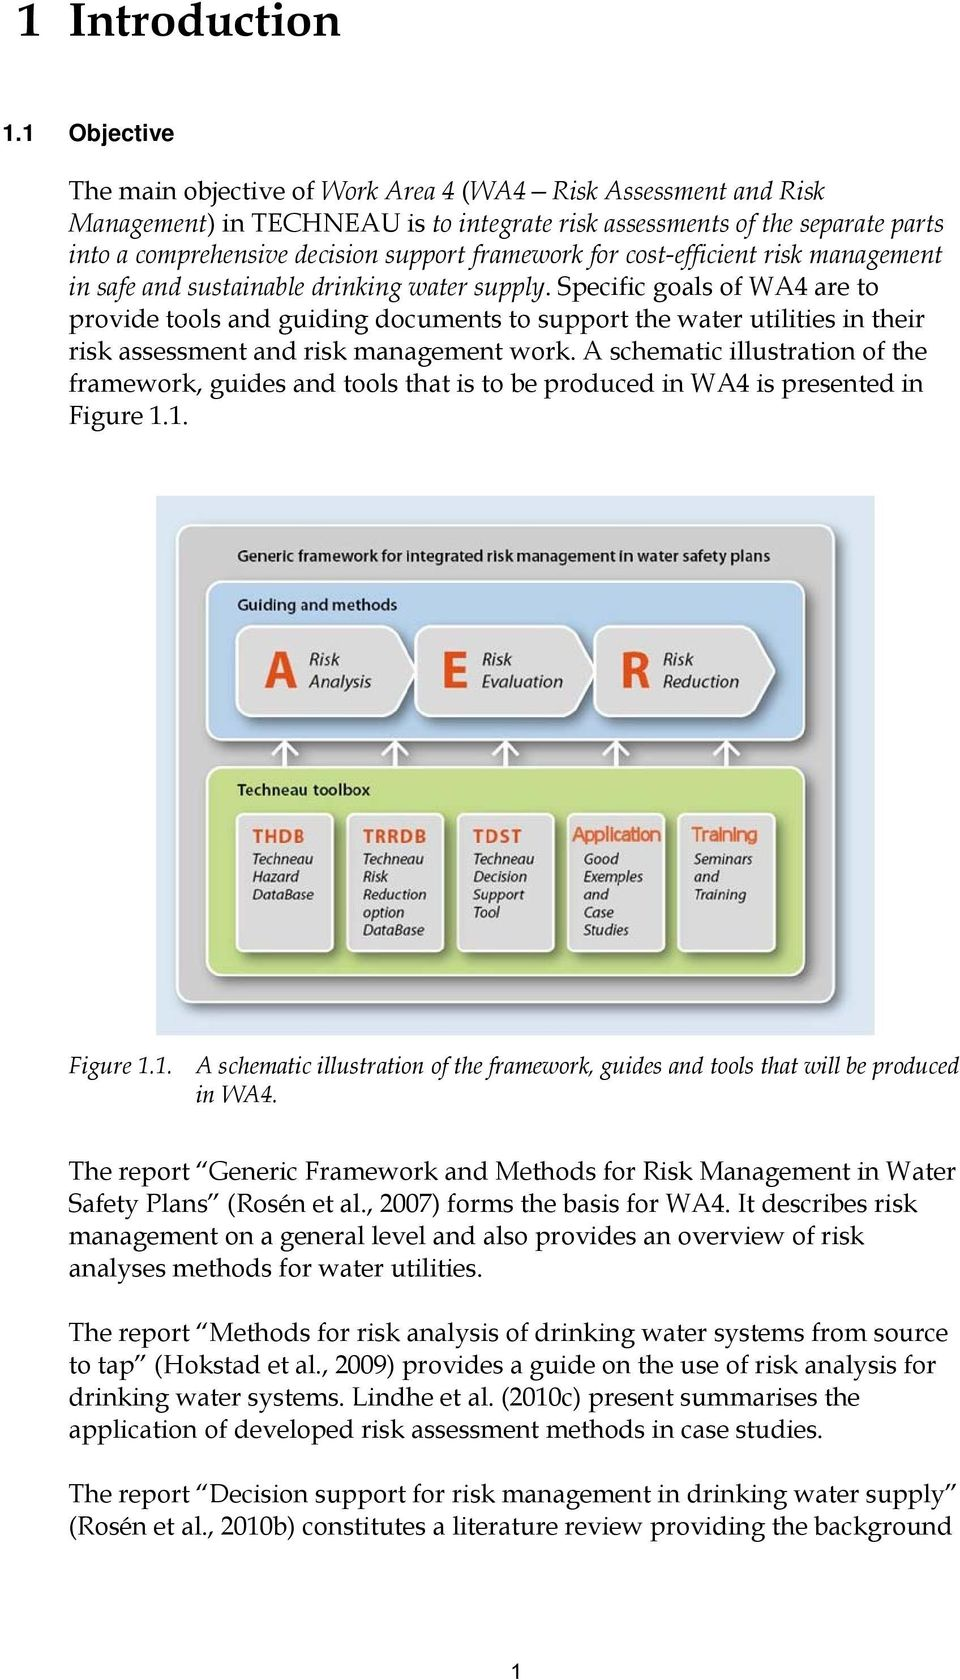 framework for cost-efficient risk management in safe and sustainable drinking water supply.